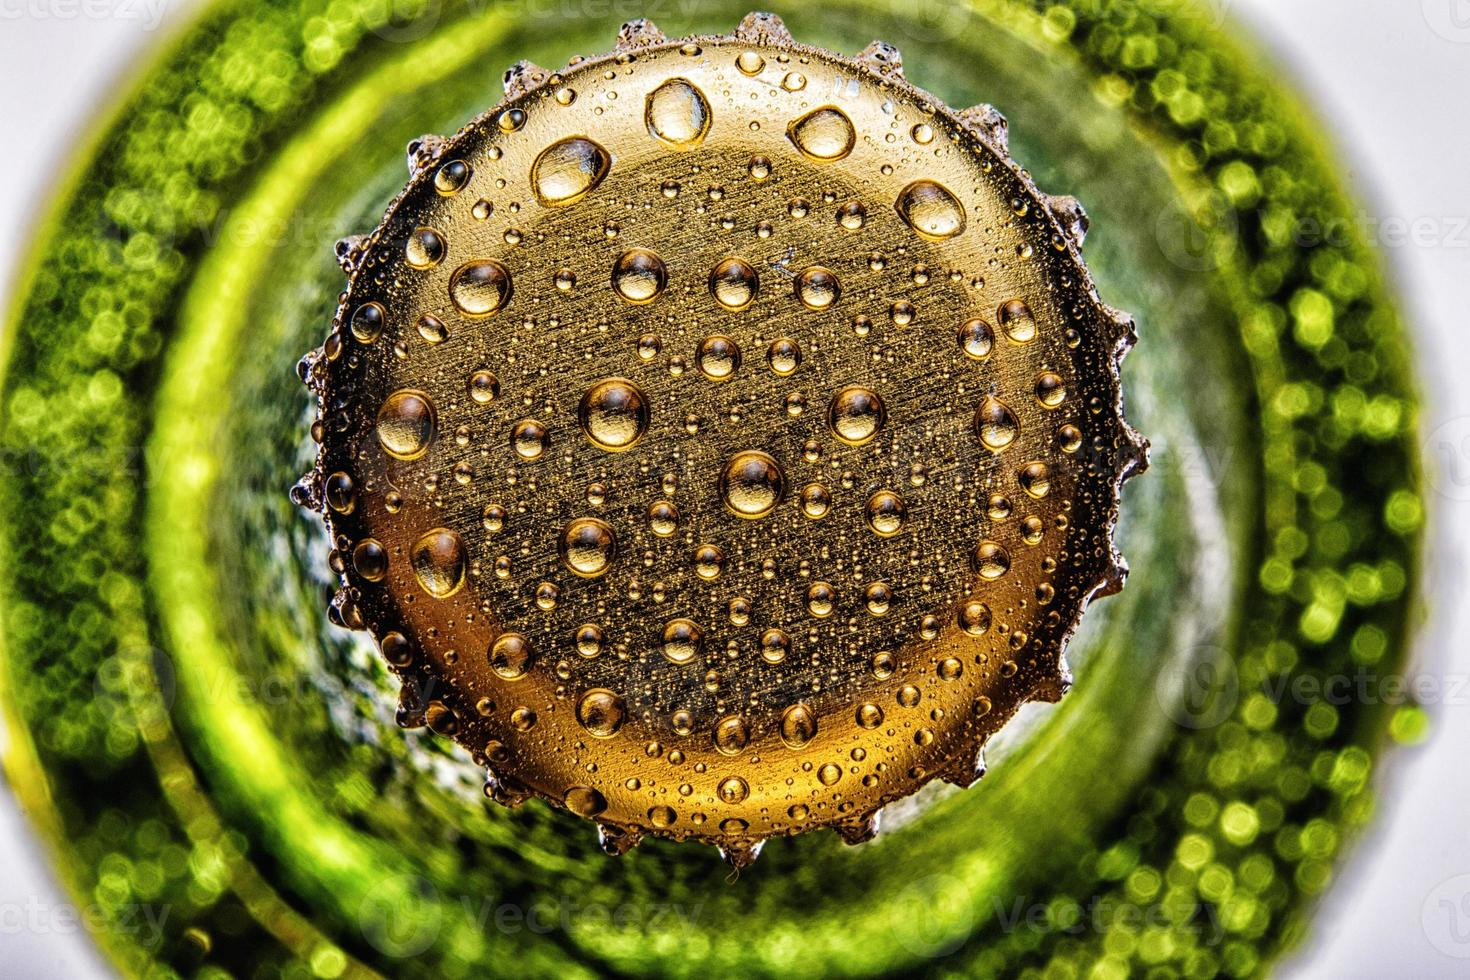 Top of the green beer bottle closeup photo